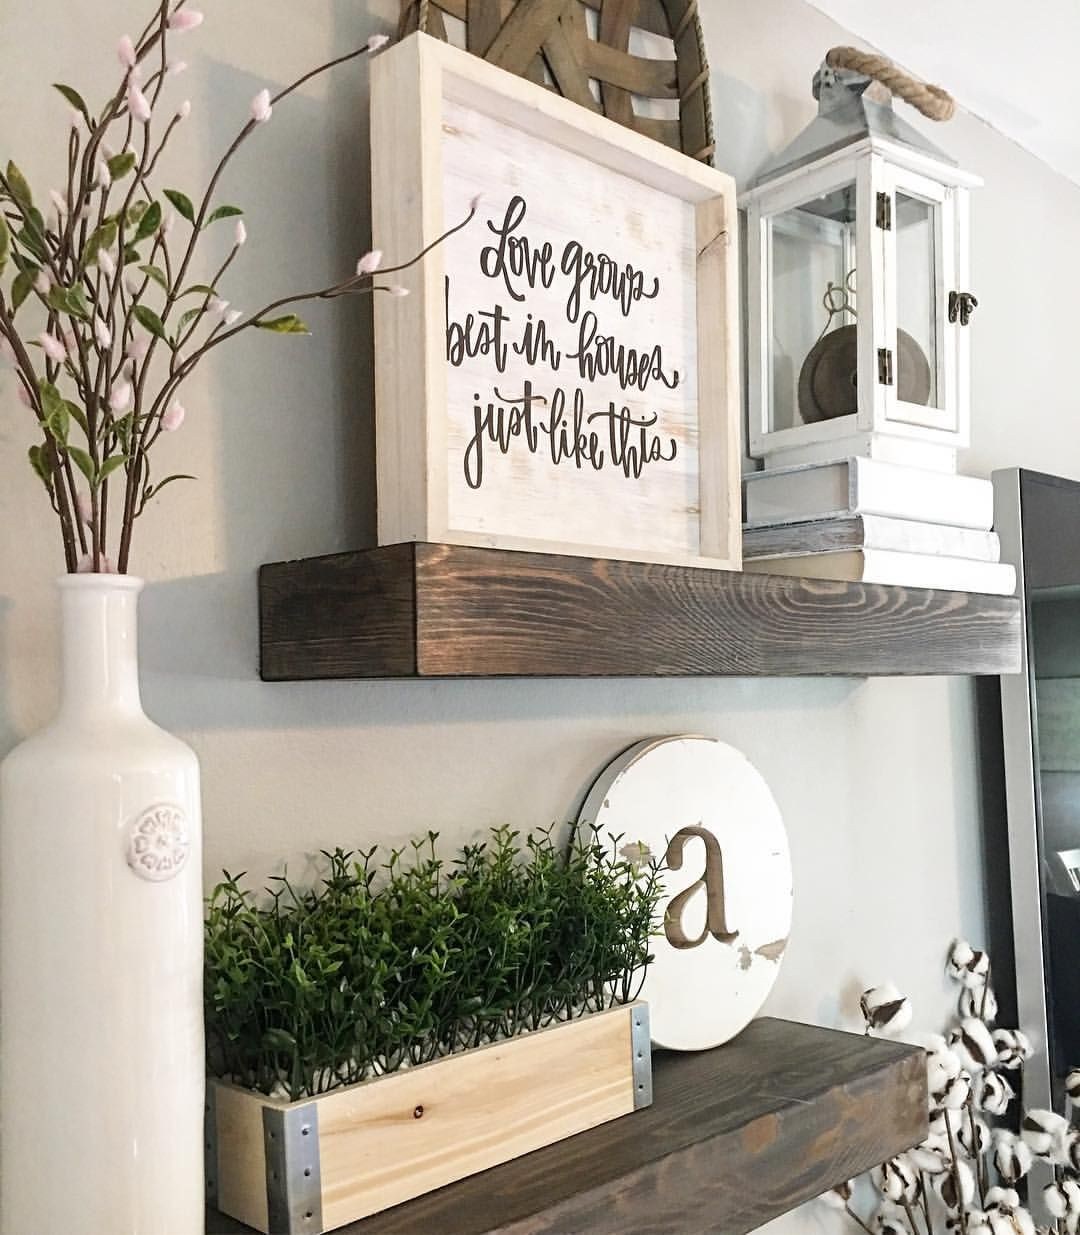 Exceptional Floating Shelves, Wood Shelves, Farmhouse Decor, Farmhouse Style, Modern  Farmhouse, Lantern, Greenery, Living Room Decor, Neutral Decor, Hobby Lobby  Decor, ...